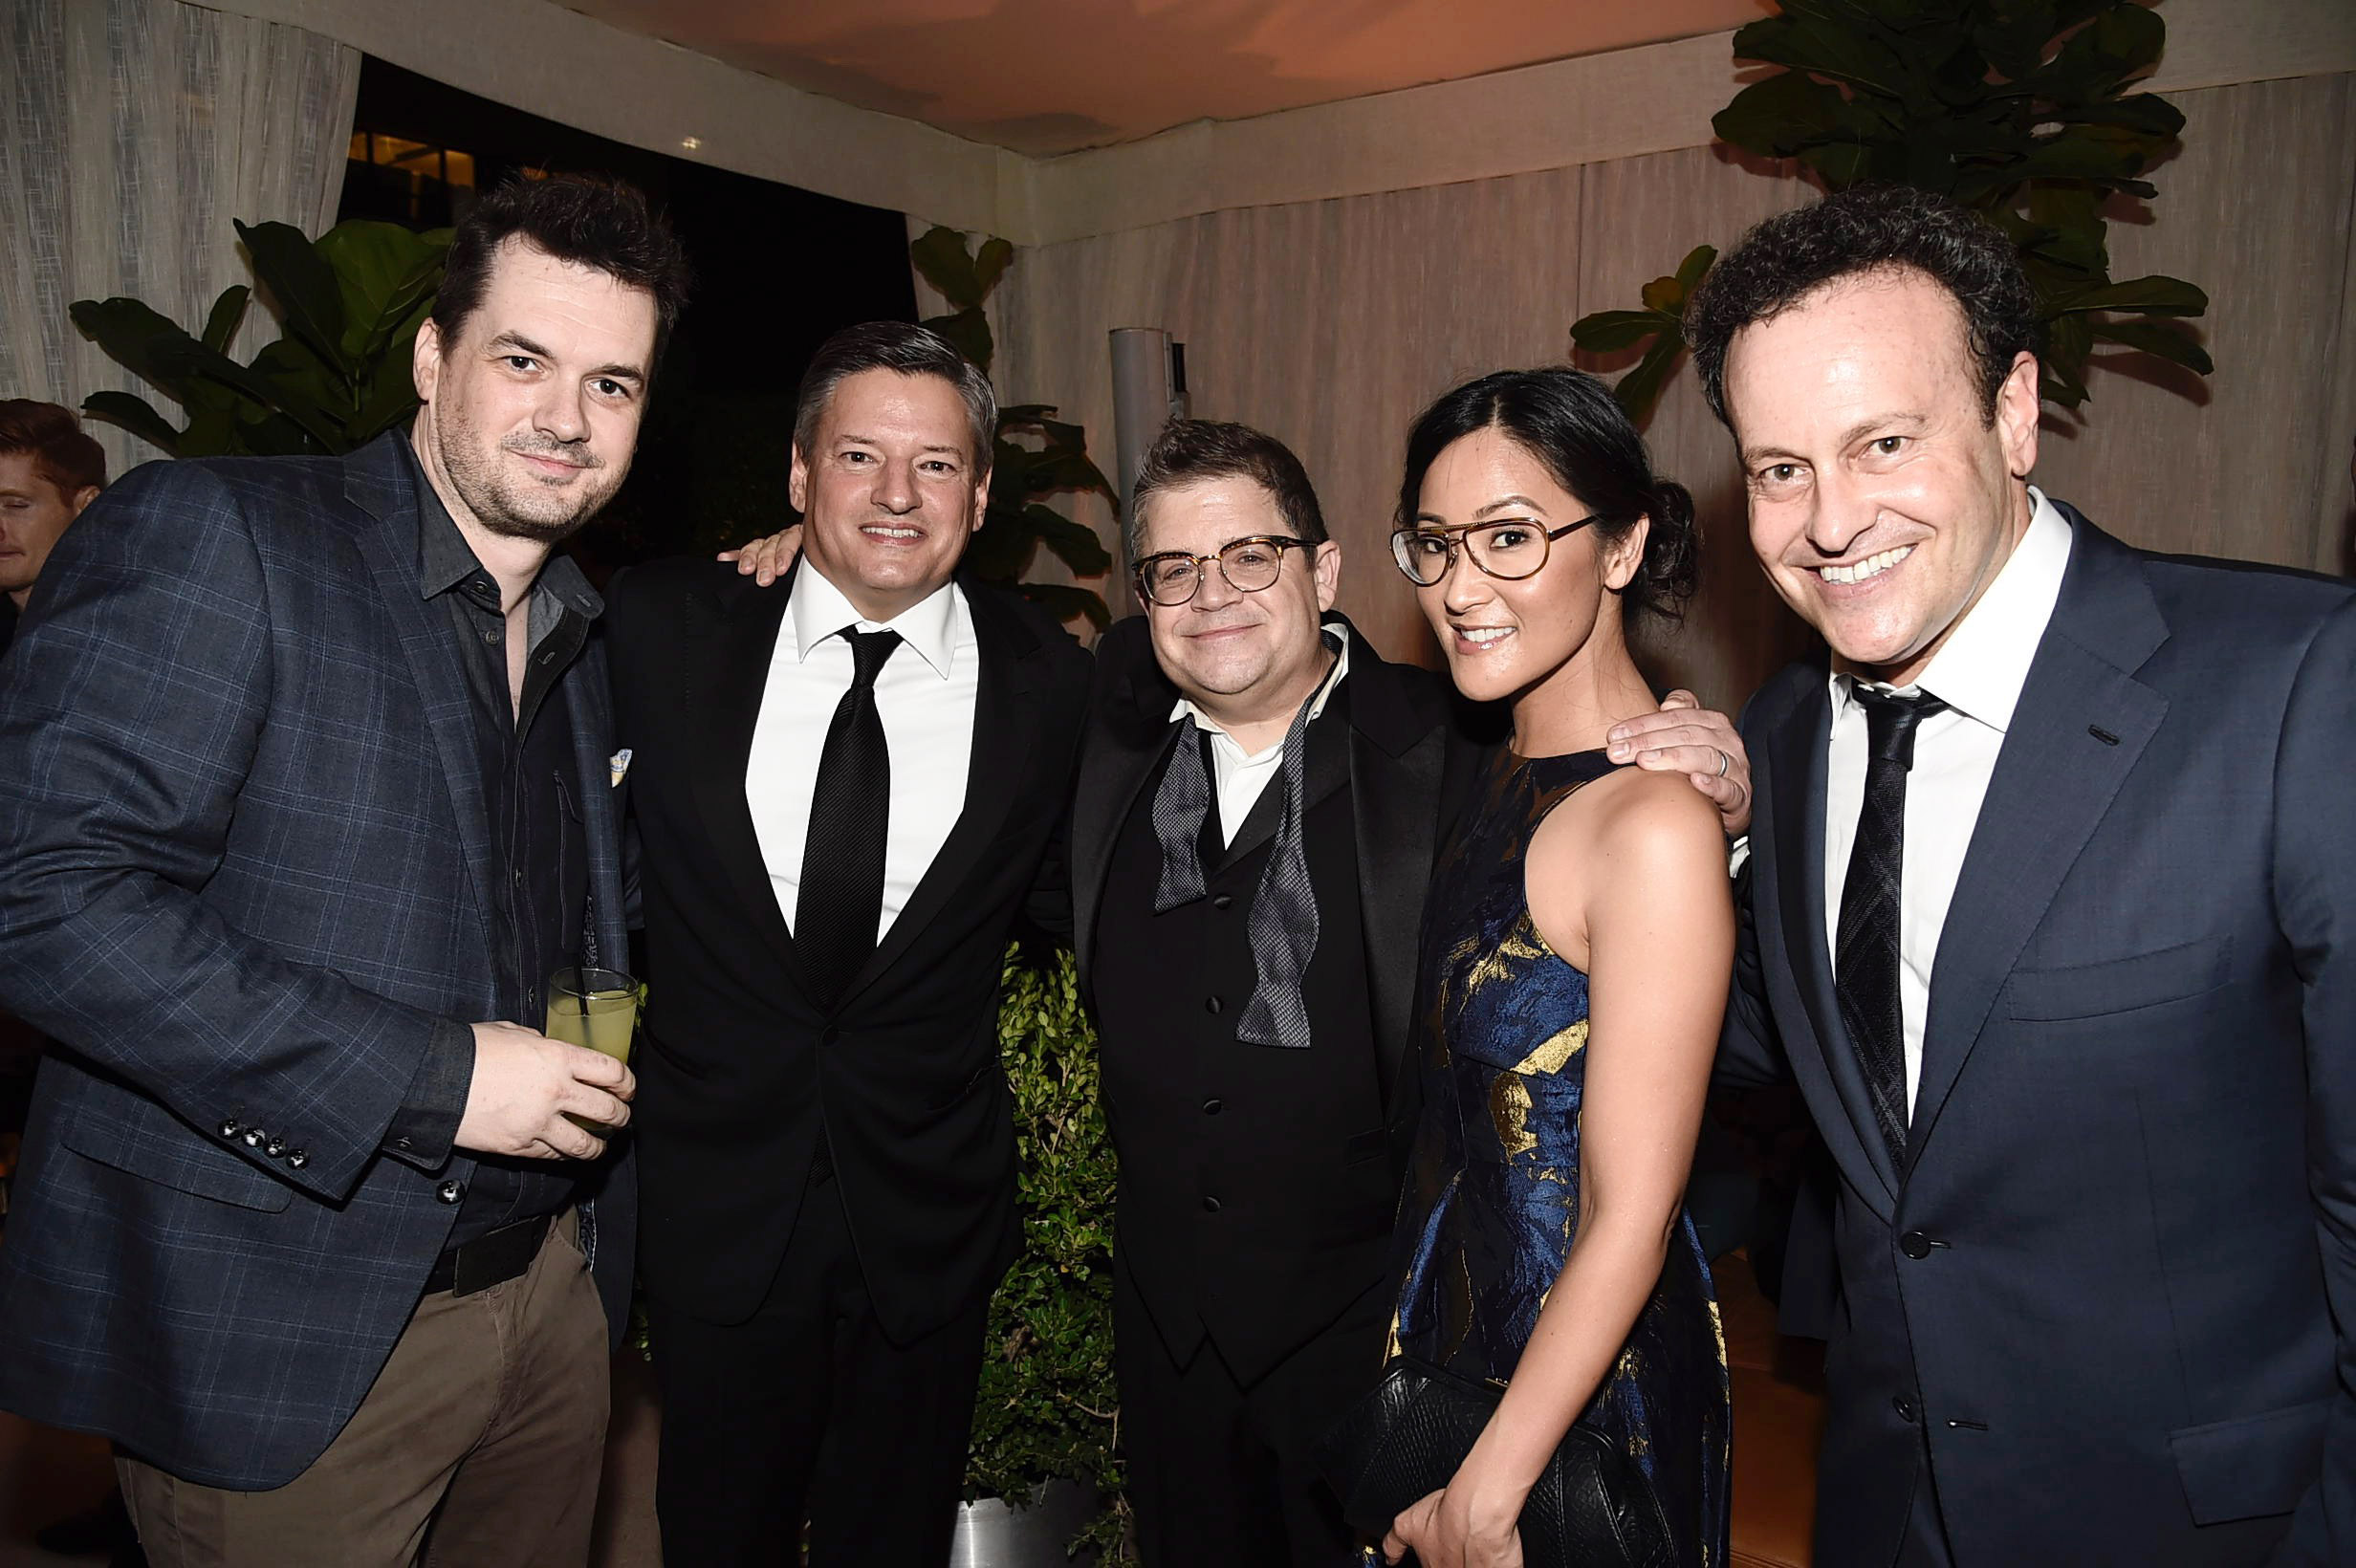 Jim Jefferies, Netflix Chief Content Officer Ted Sarandos, Patton Oswalt, Lisa Nishimura, Netflix VP of Original Documentary and Comedy, and Mitchell Hurwitz seen at Netflix 2016 Emmy Party at NeueHouse on Sunday, Sept. 18, 2016, in Los Angeles.